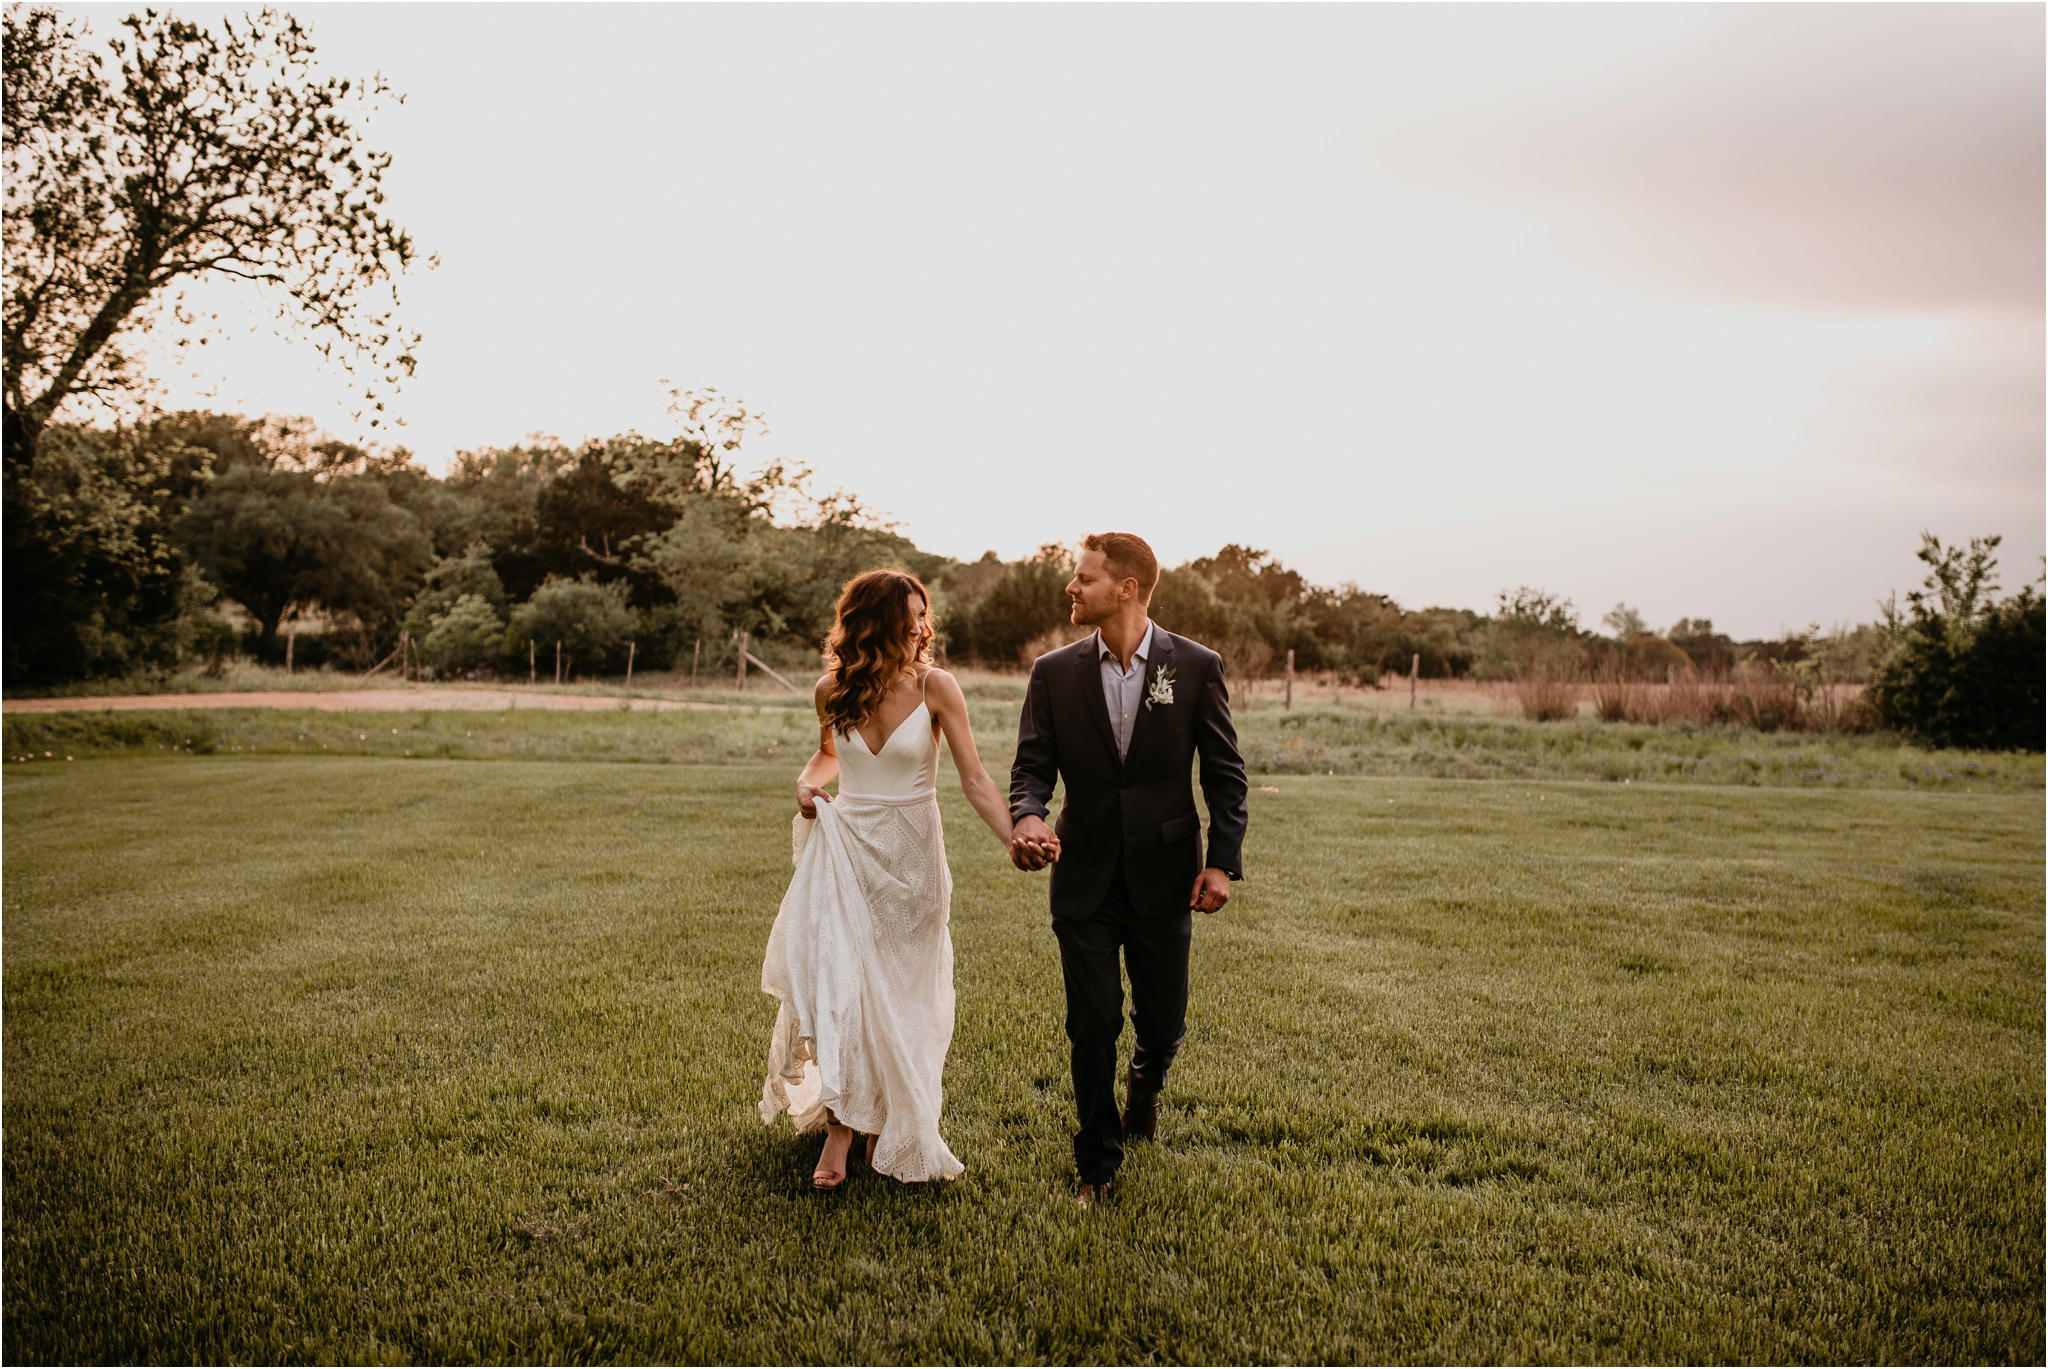 jillian-and-scott-pecan-springs-ranch-texas-and-washington-wedding-photographer-108.jpg